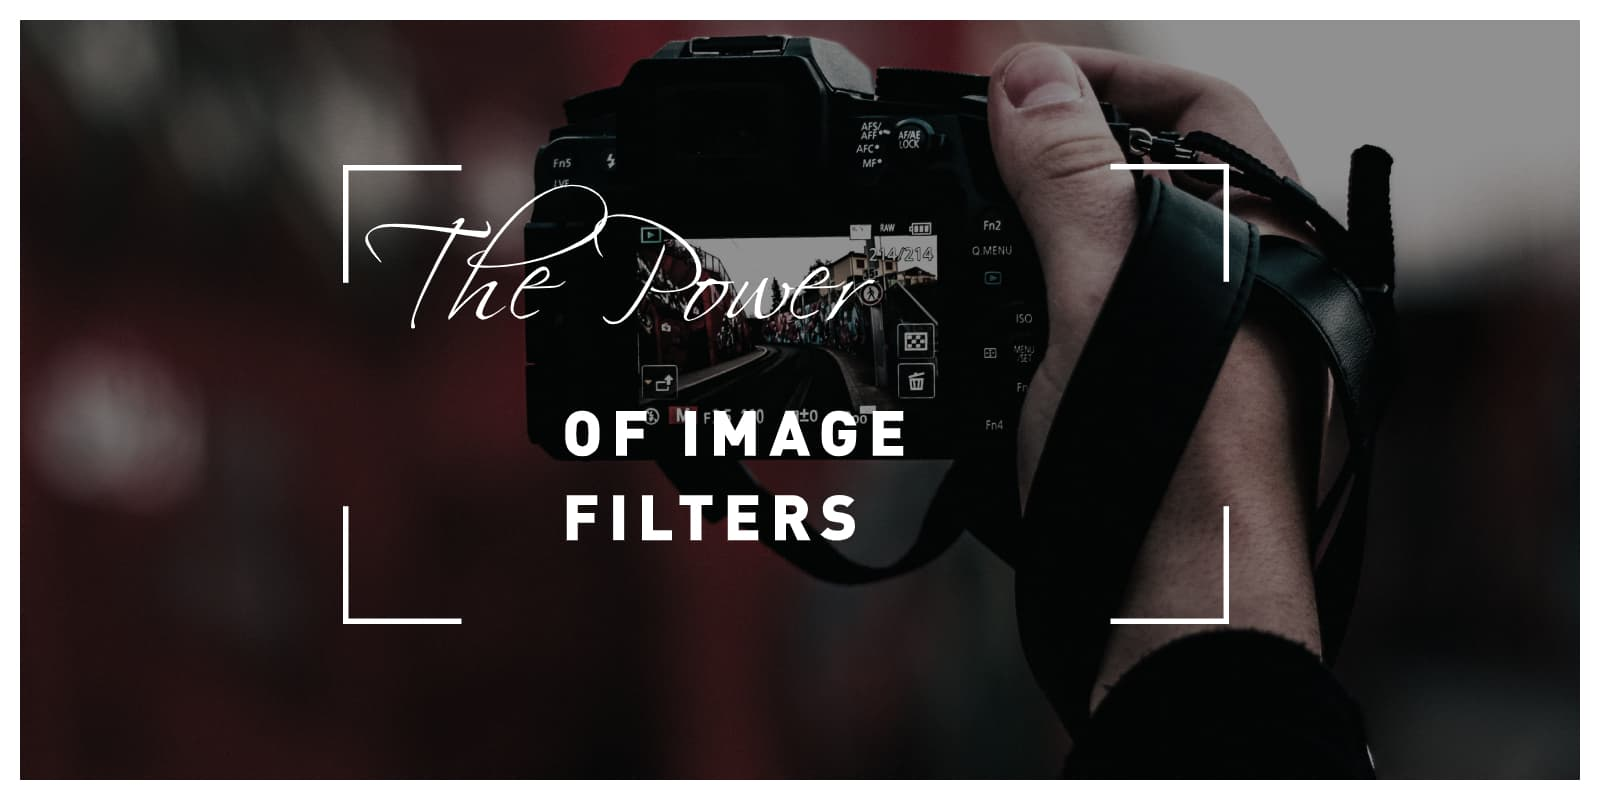 The Power Of Image Filters